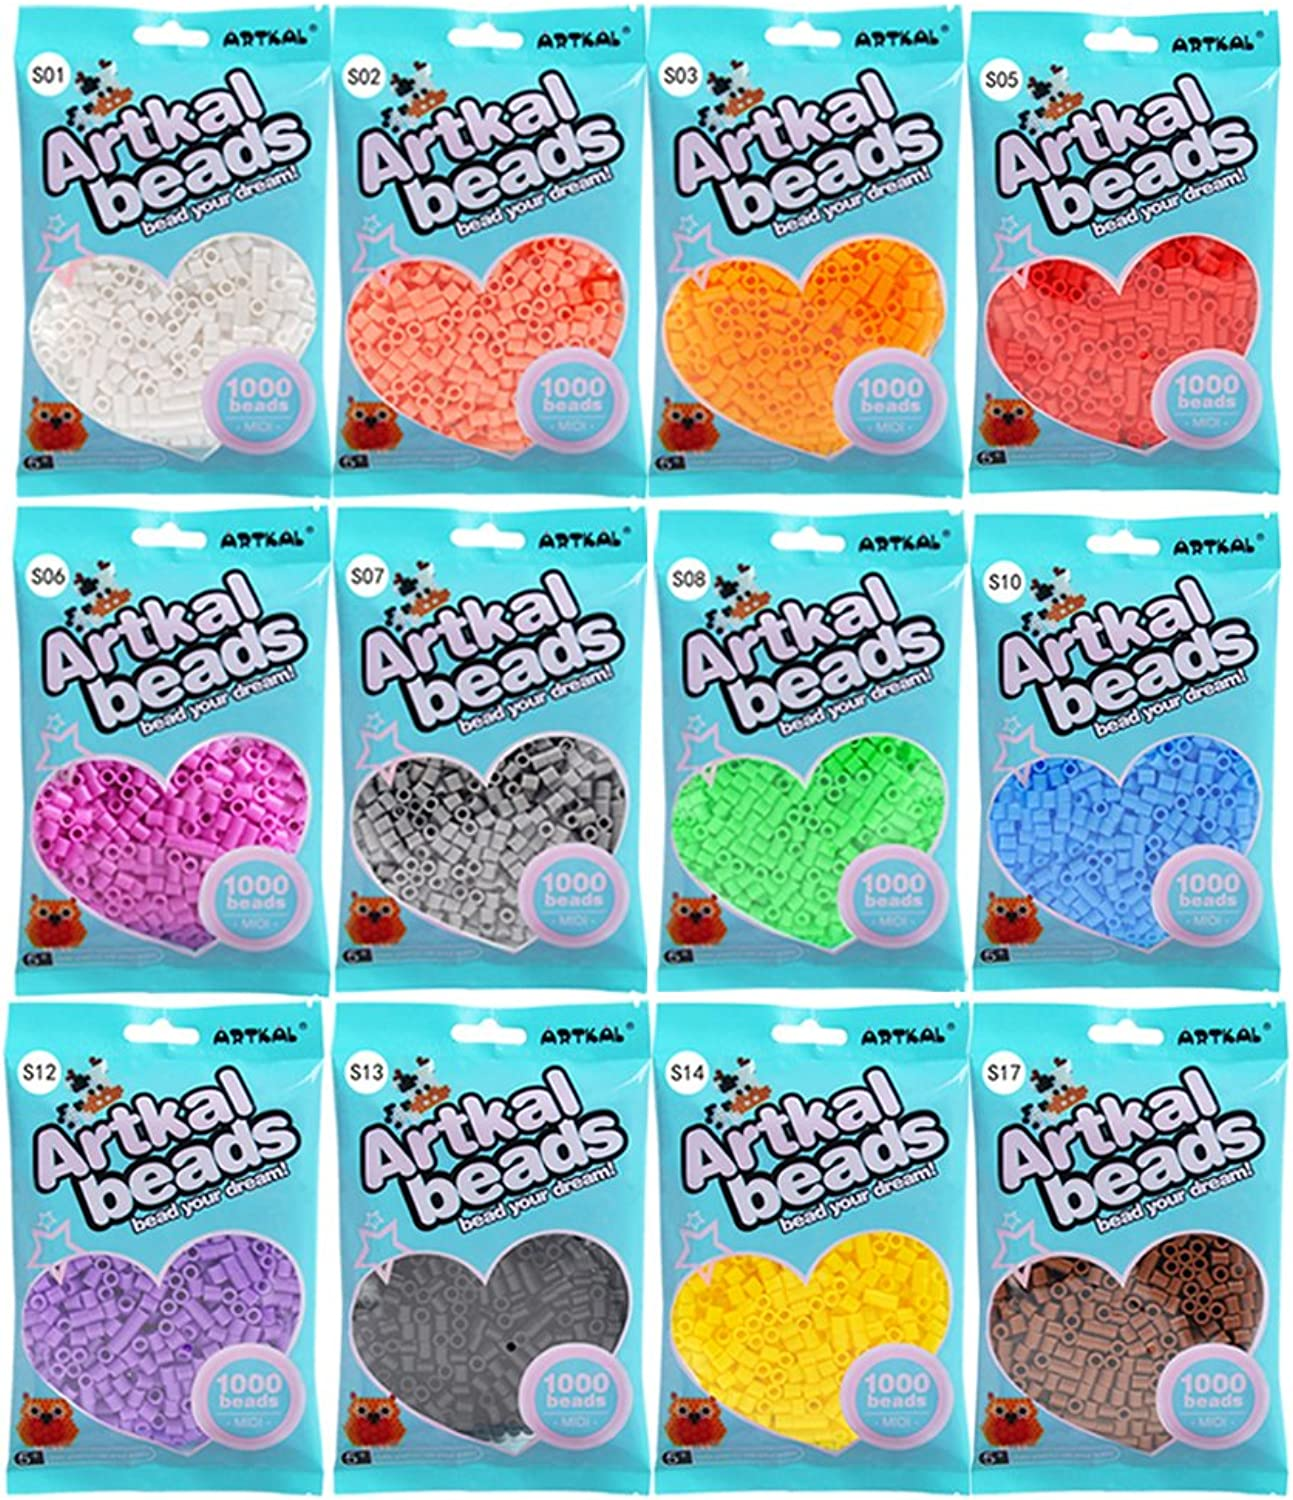 Artkal Beads 12 colors Bag Set 1000 Count Bag Pack SB100012A to E for Choice (A)